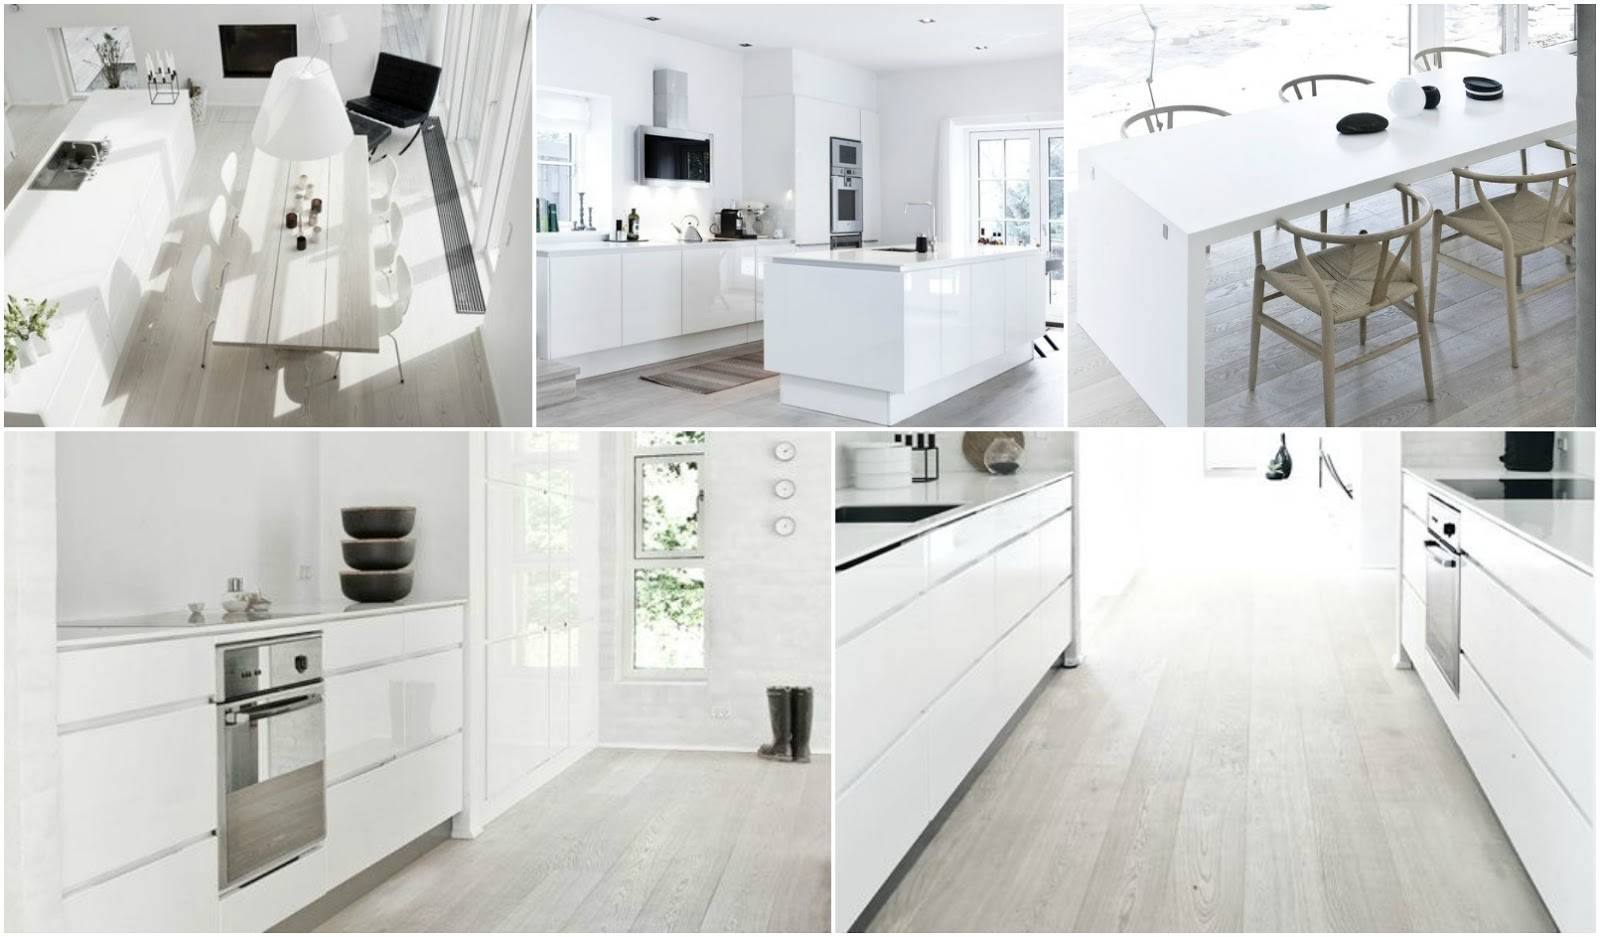 White Kitchen Laminate Flooring laminate tiles for kitchen floor - wood floors